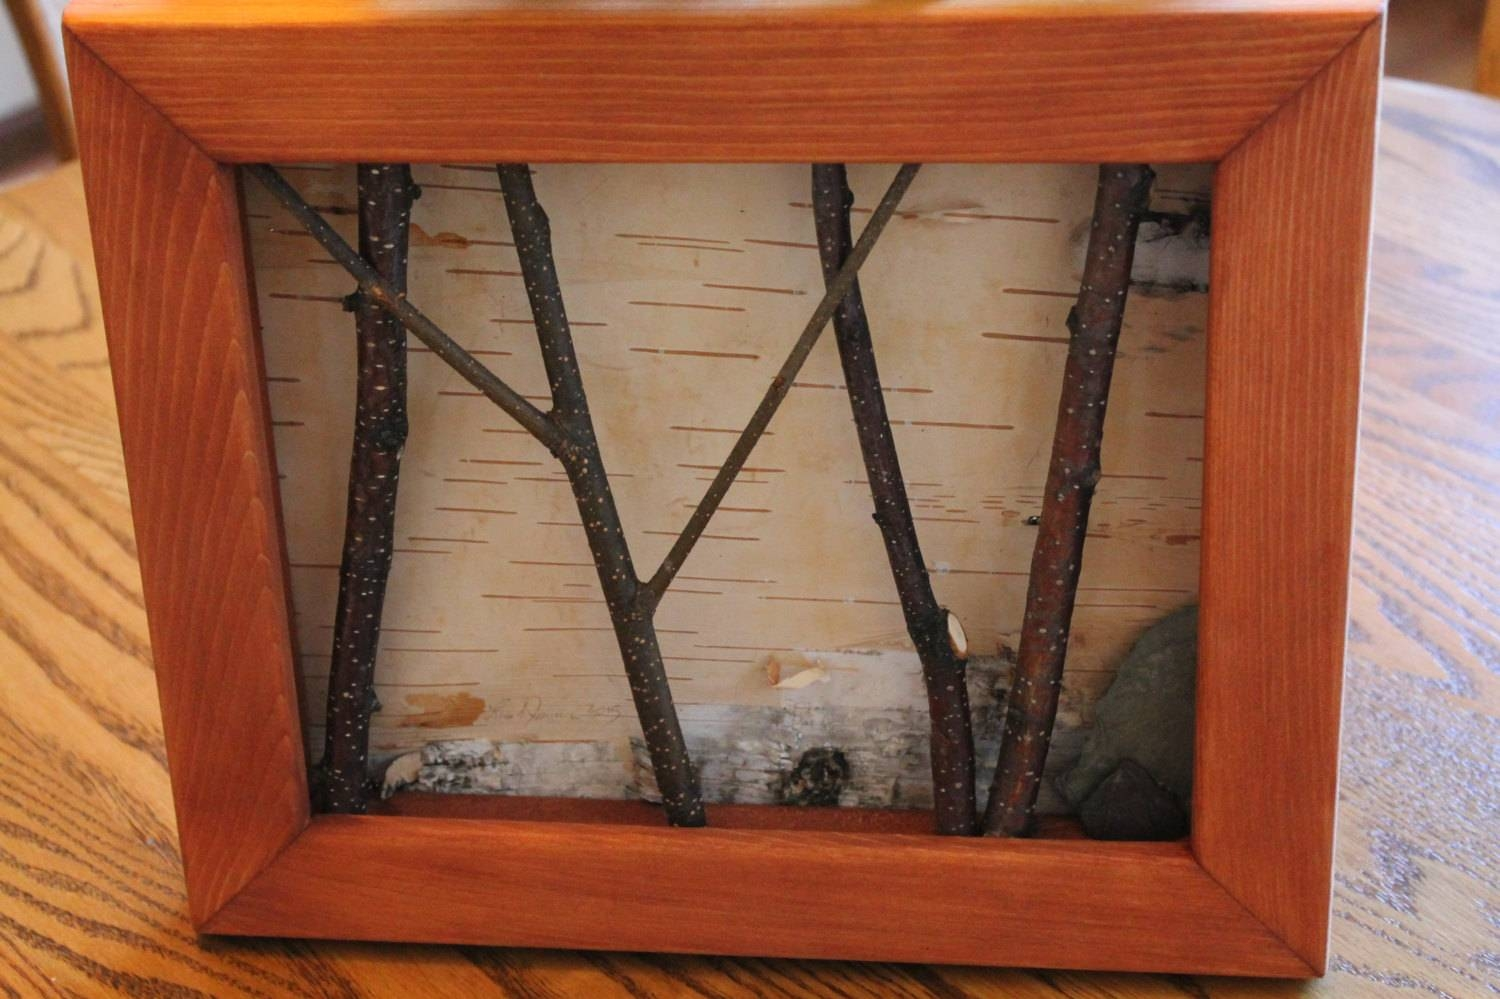 Birch Bark Framed Art Rustic Birch Twig Art White Birch With Most Recently Released Framed 3d Wall Art (View 8 of 20)